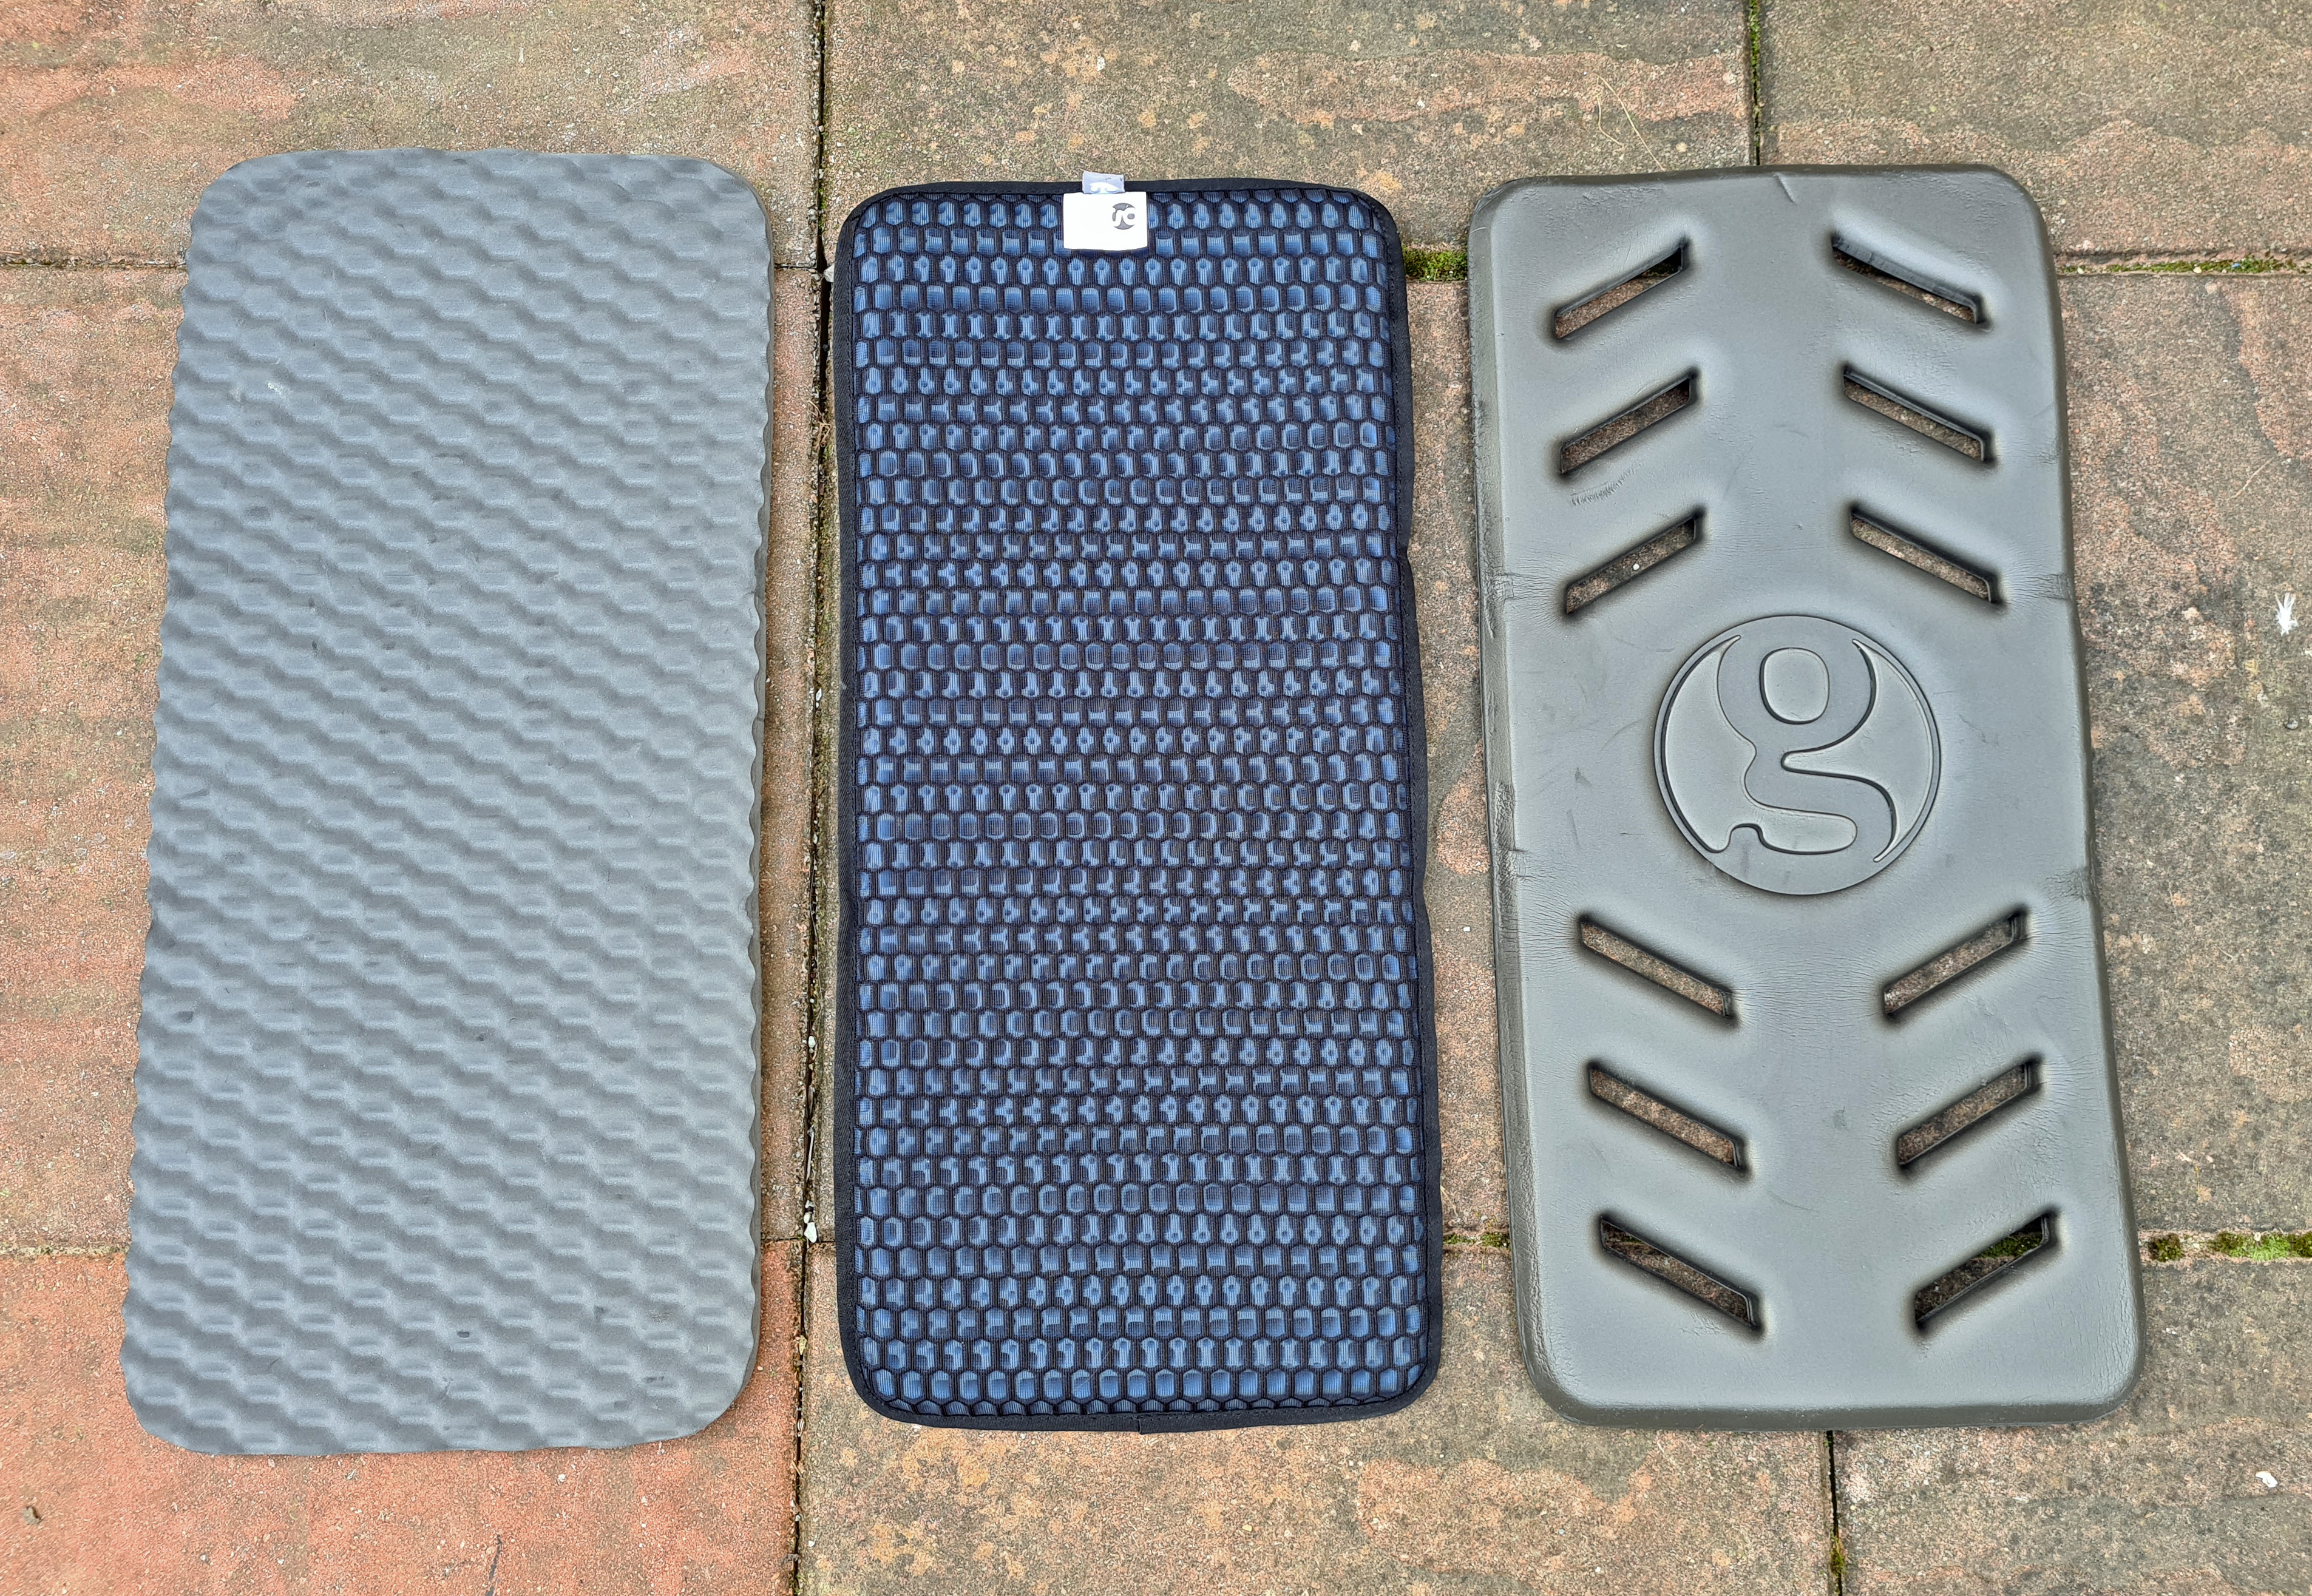 Front face of three Gossamer Gear sit pads compared